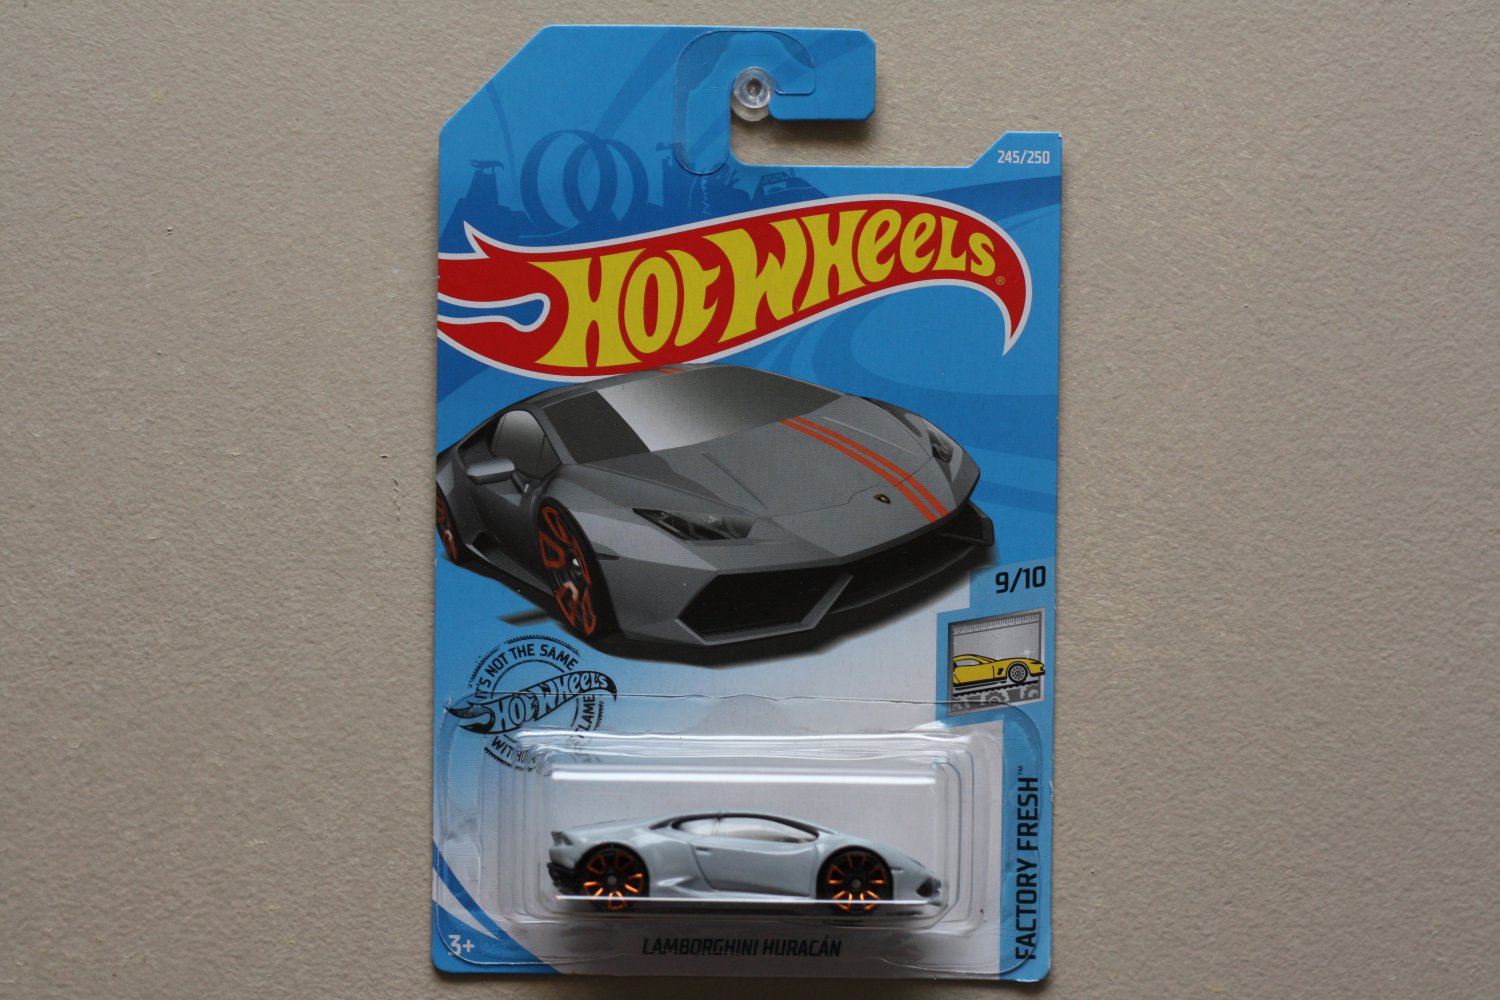 Hot Wheels 2019 Factory Fresh Lamborghini Huracan (grey)